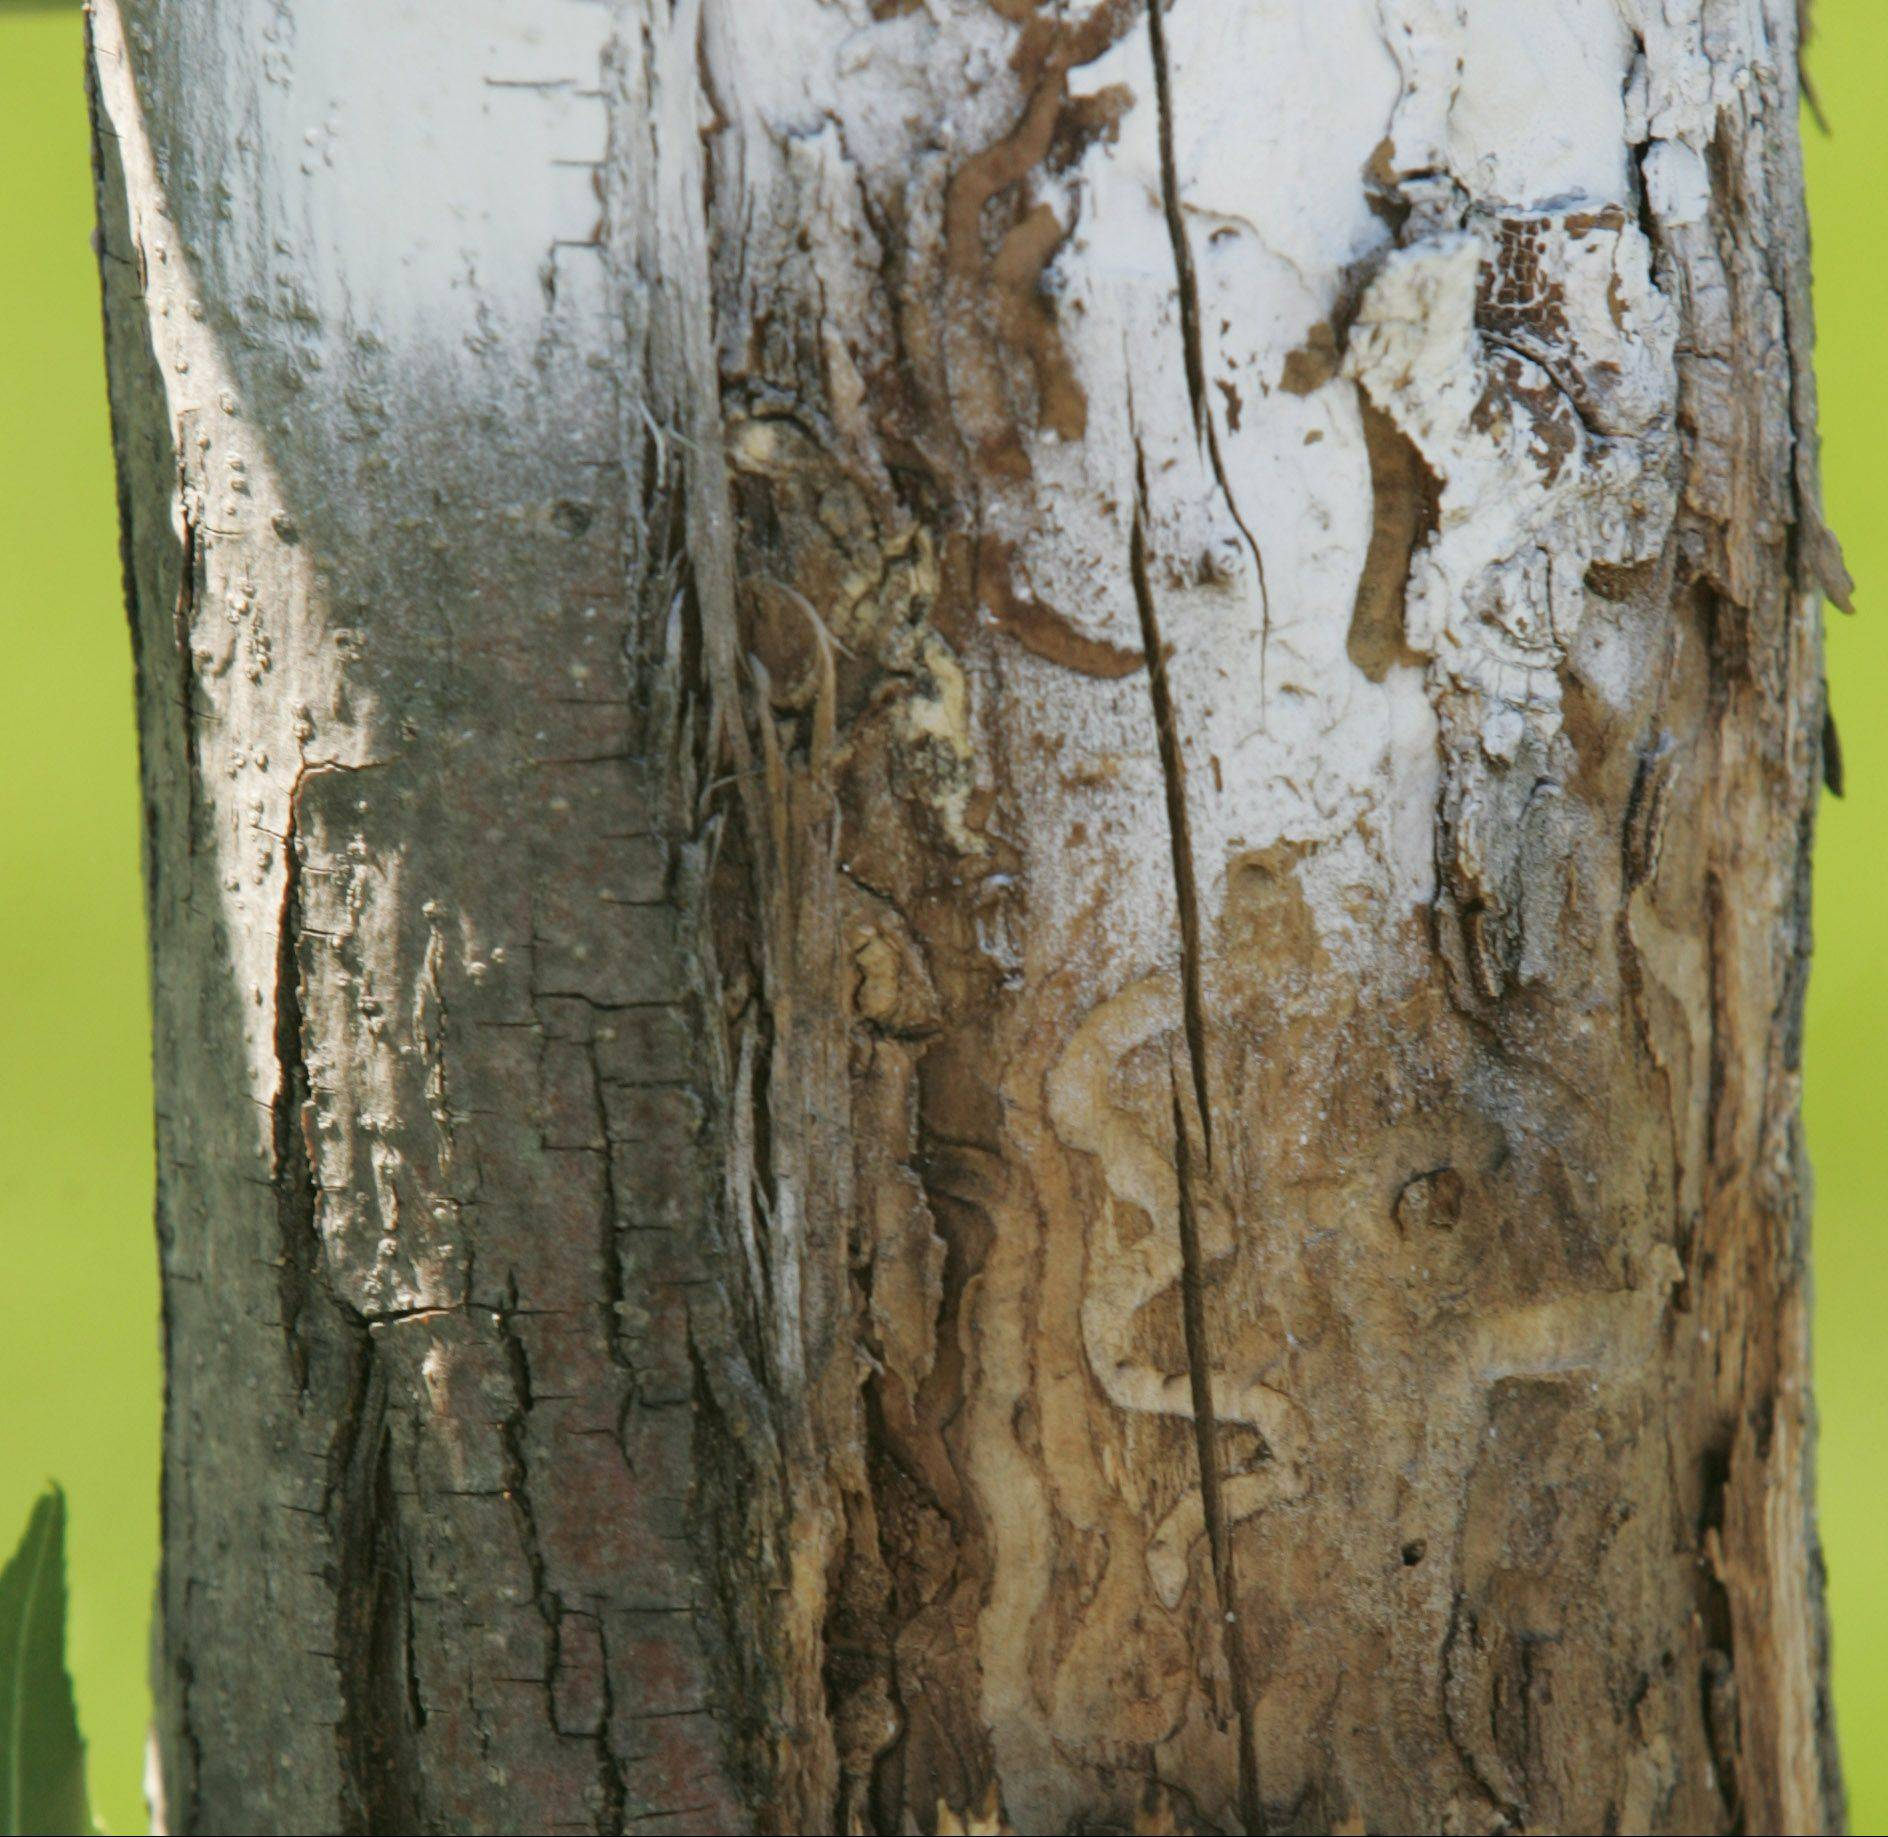 The emerald ash borer has made its way to Carpentersville, infecting several trees along Alexandria Lane on the west side of the village. Village leaders have received a grant to replace between 45 and 50 of the more diseased trees.